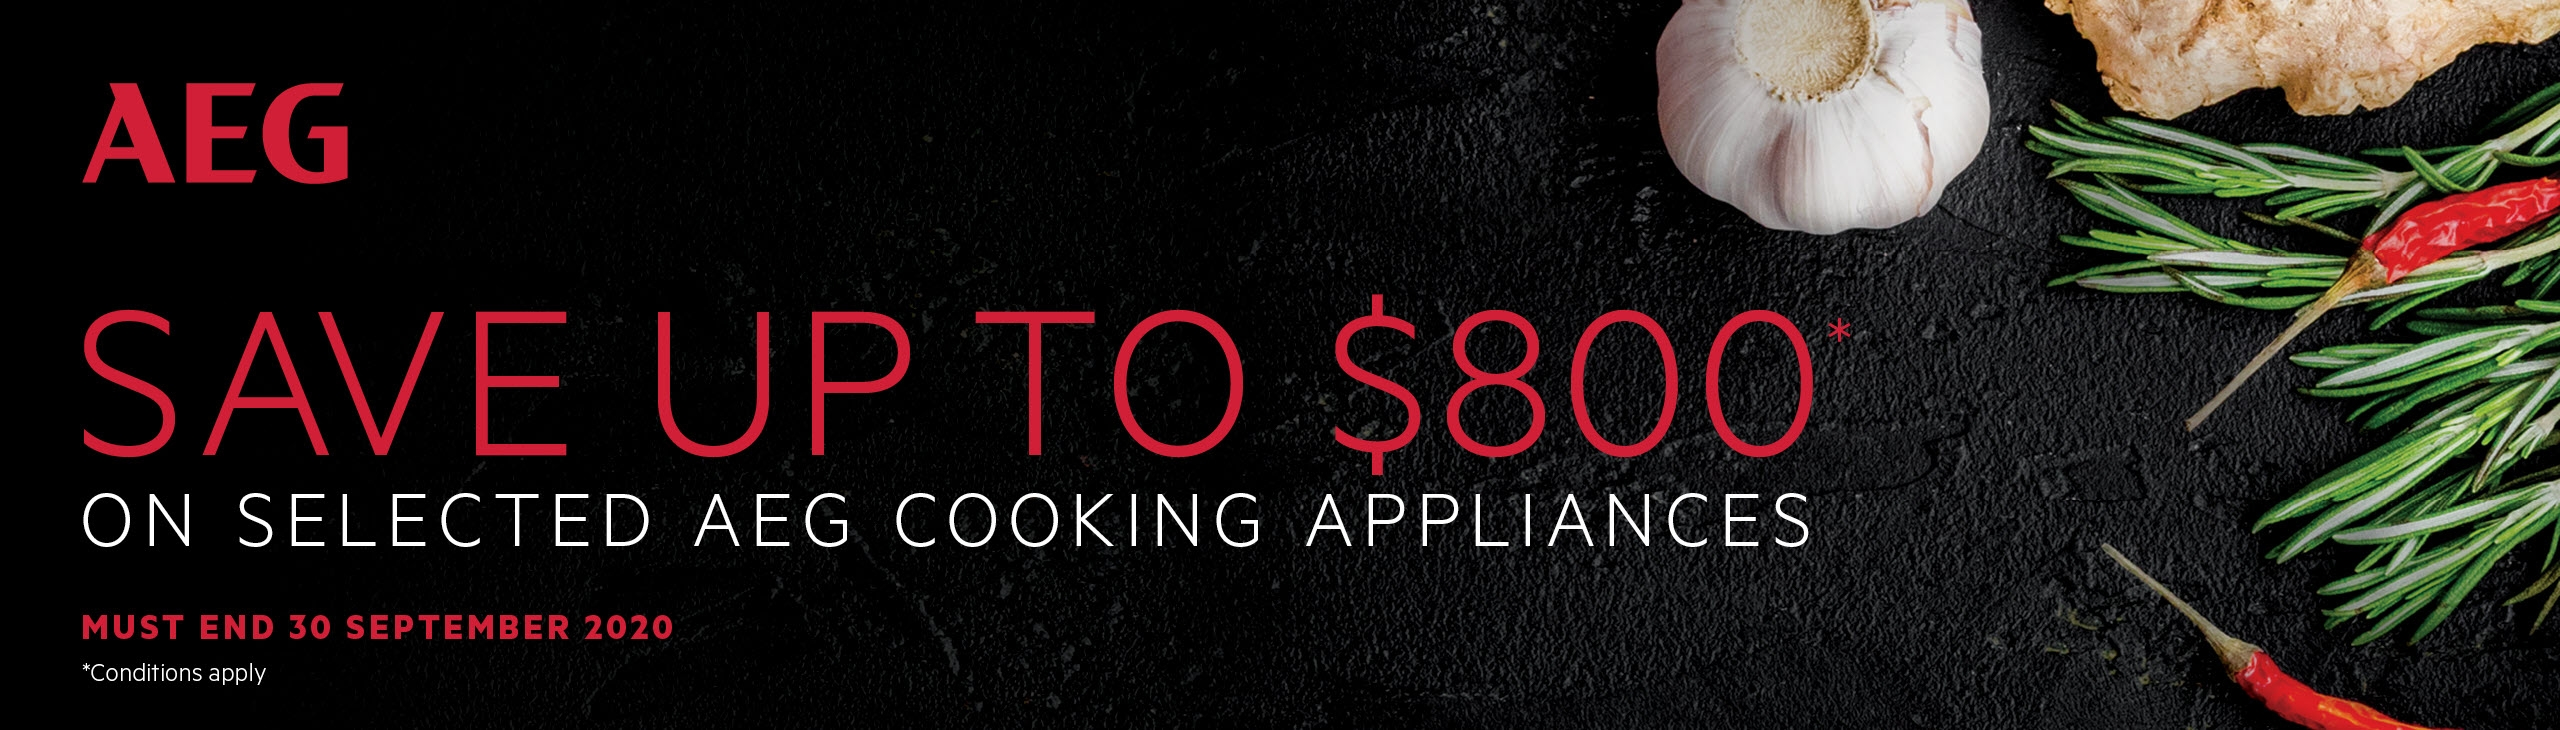 AEG Save Up To $800 on Selected AEG Kitchen Appliances Sept 2020